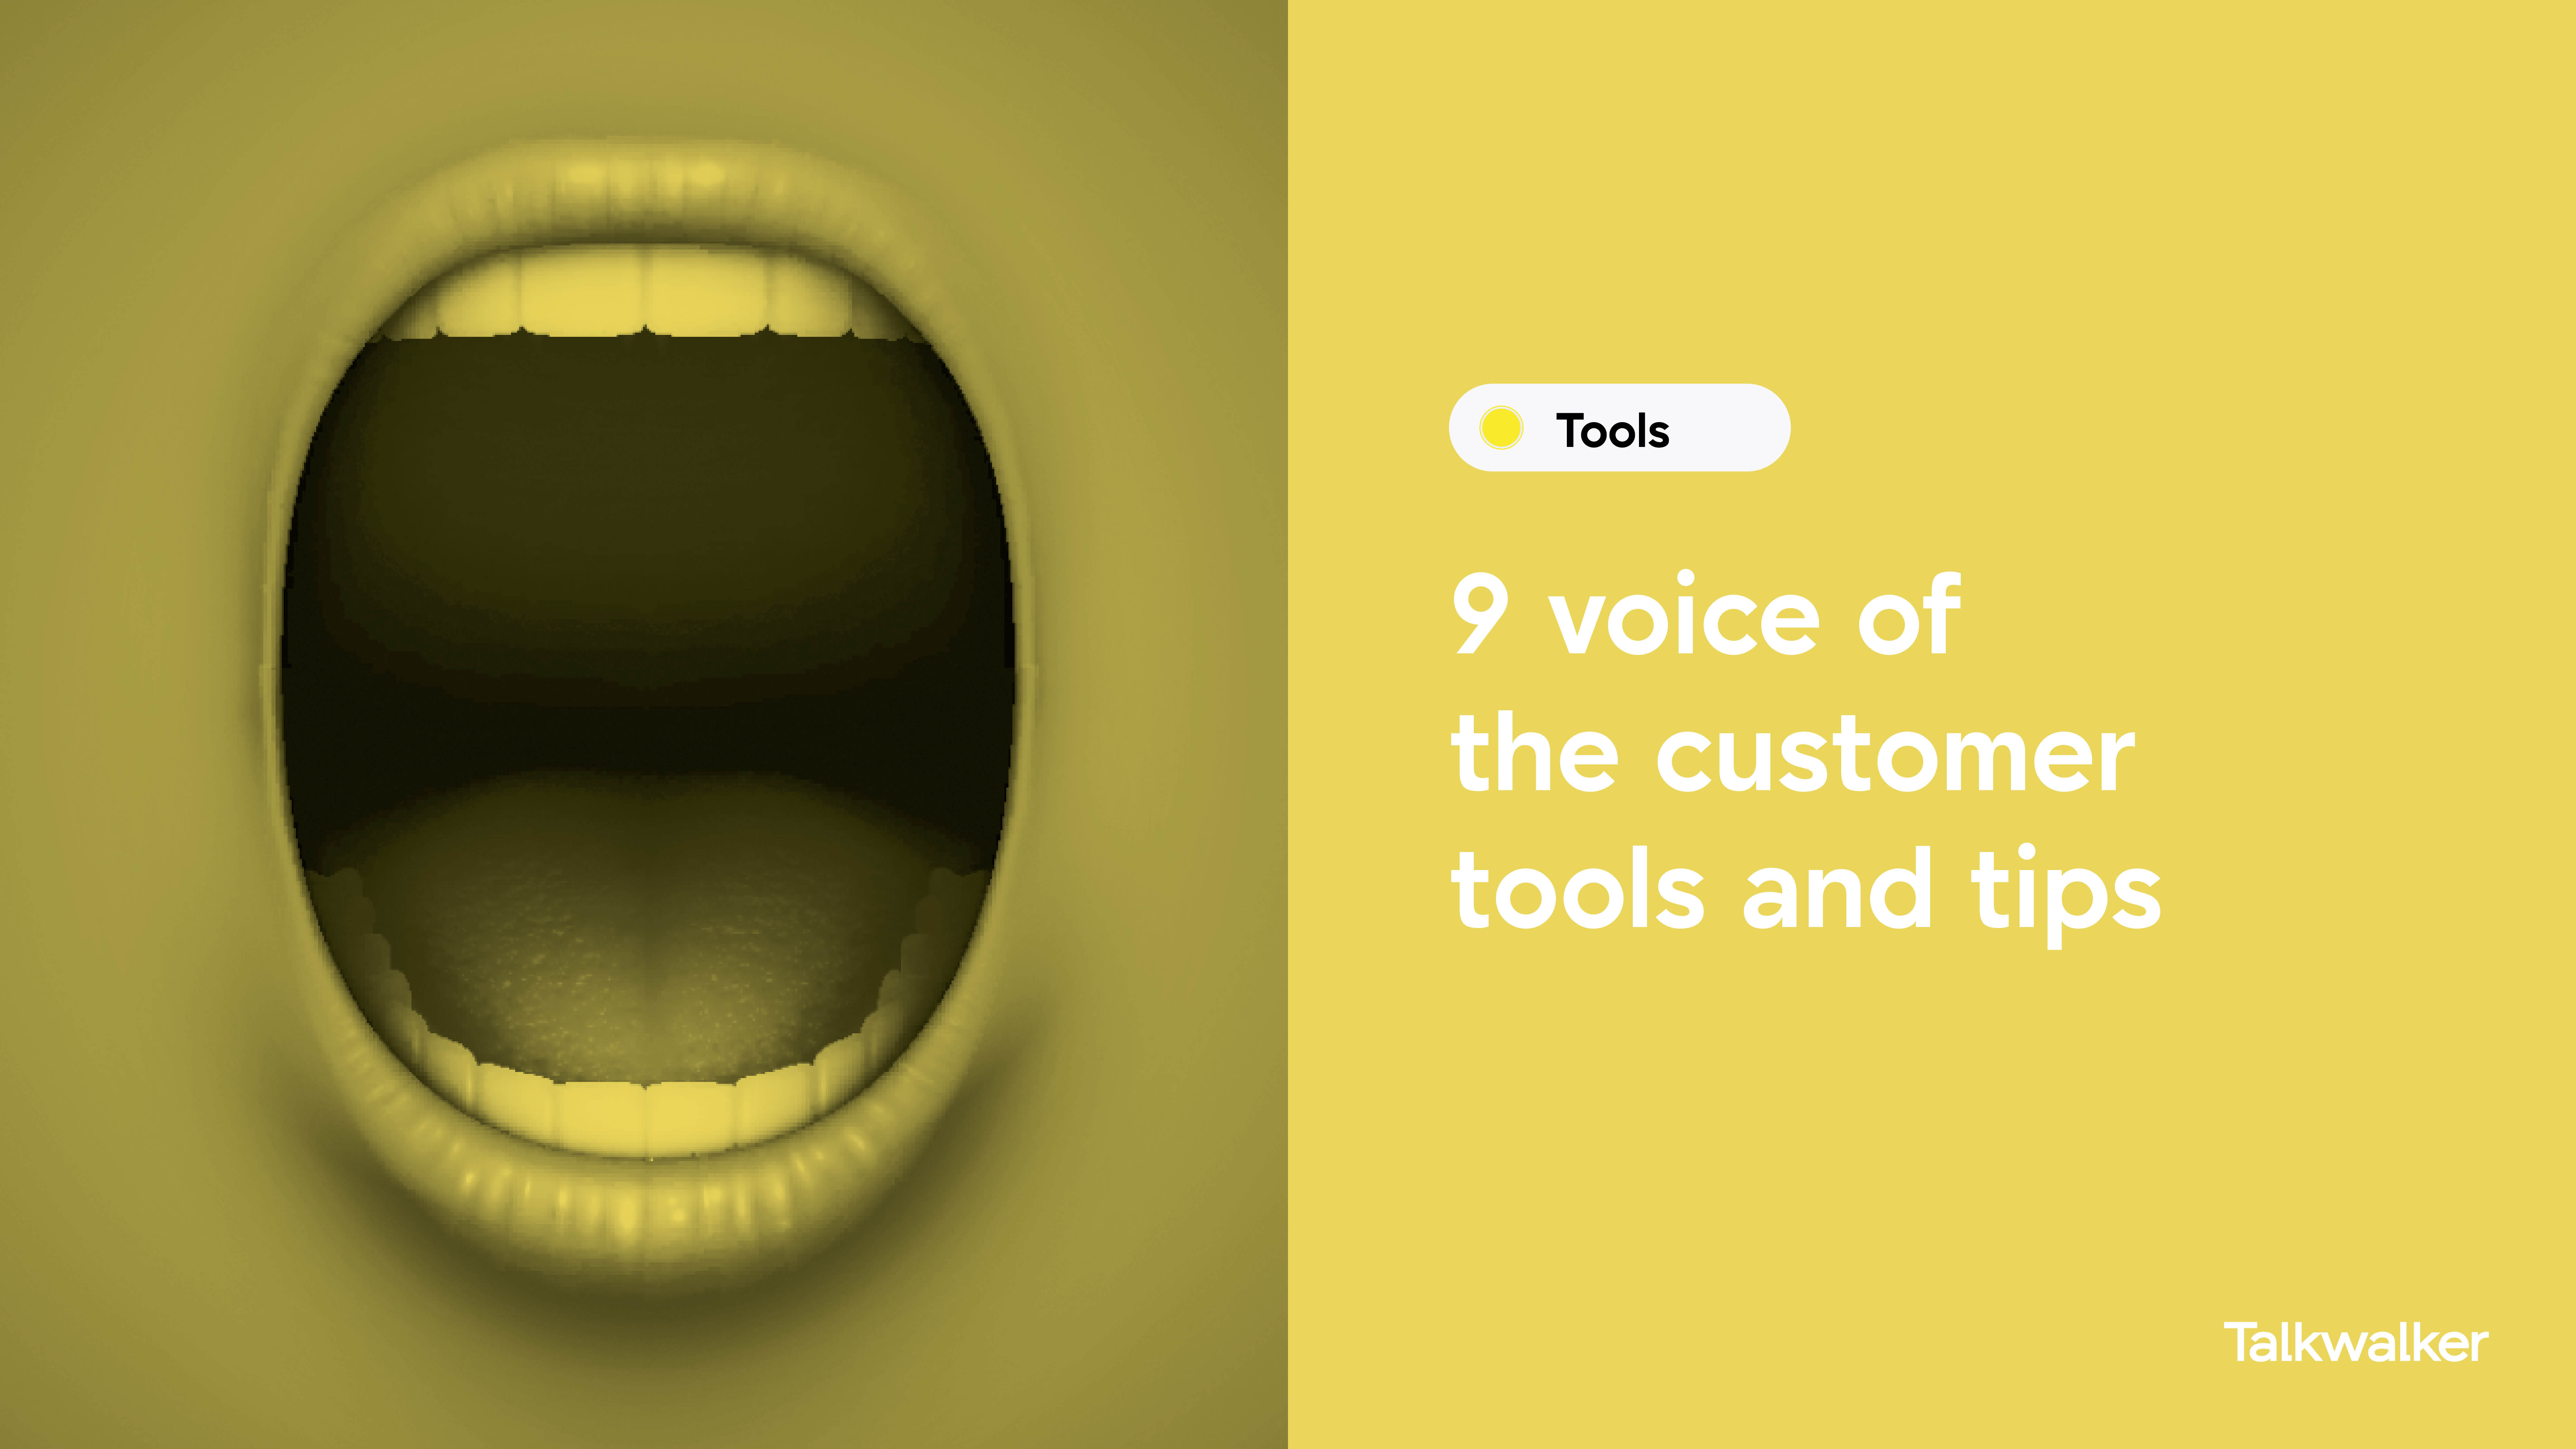 Voice of customer tools - mouth open wide